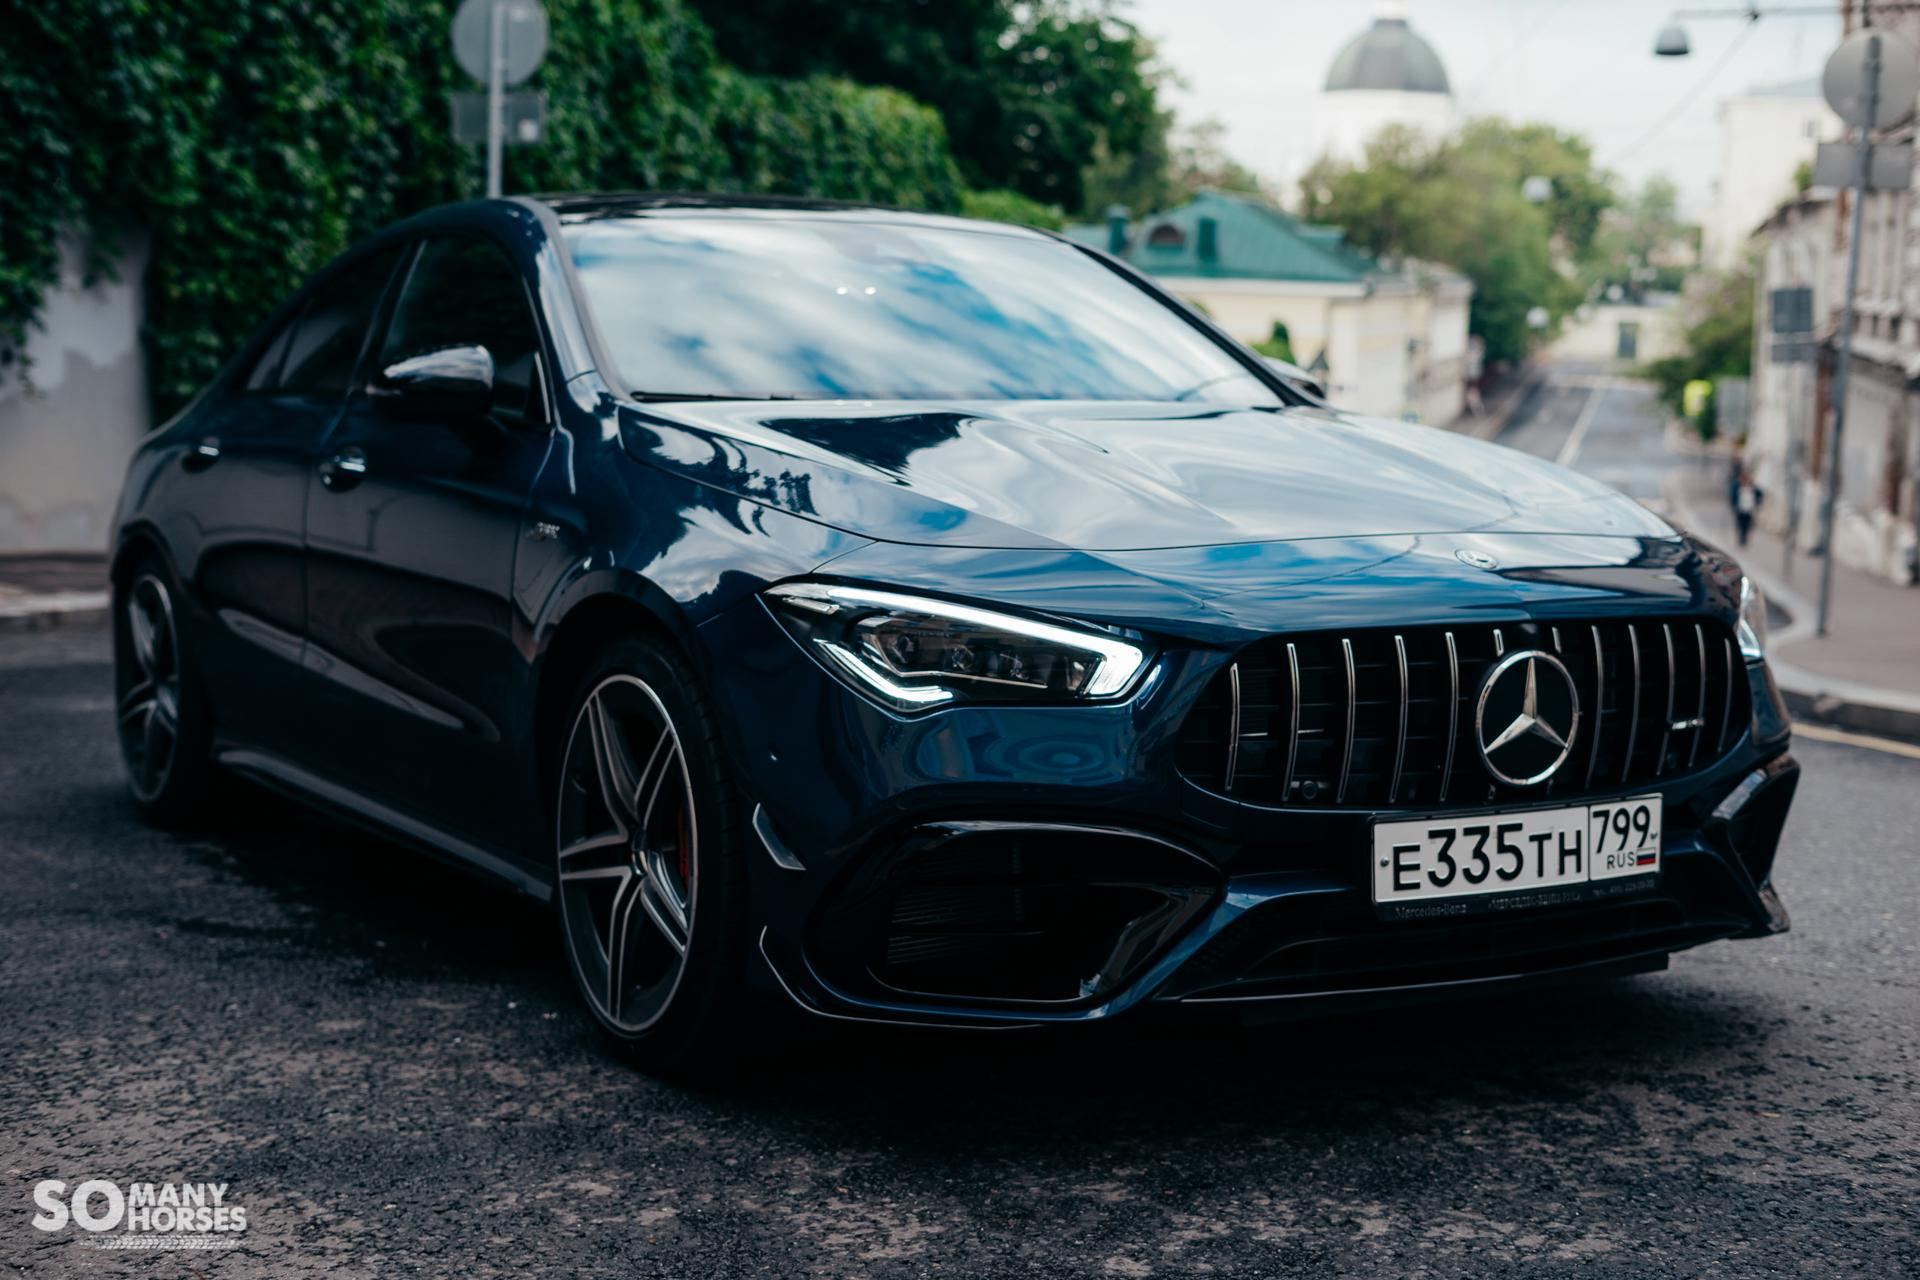 Тест-драйв Mercedes-AMG CLA 45 S 4MATIC+: генератор эмоций